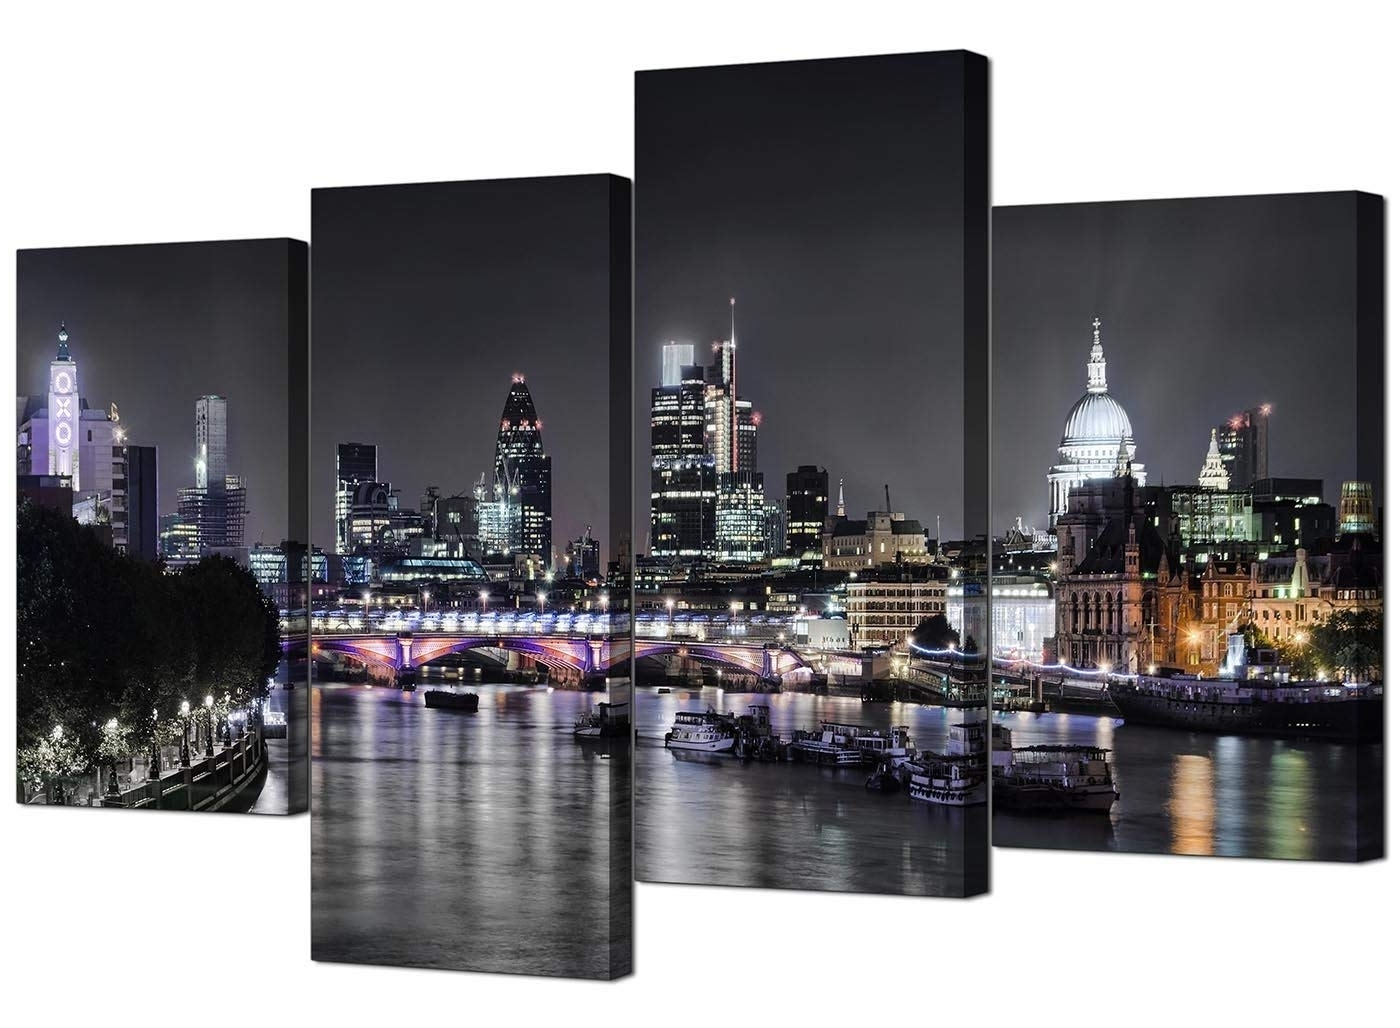 Trendy Canvas Wall Art Of London Skyline For Your Living Room – 4 Panel With Regard To London Wall Art (View 3 of 15)